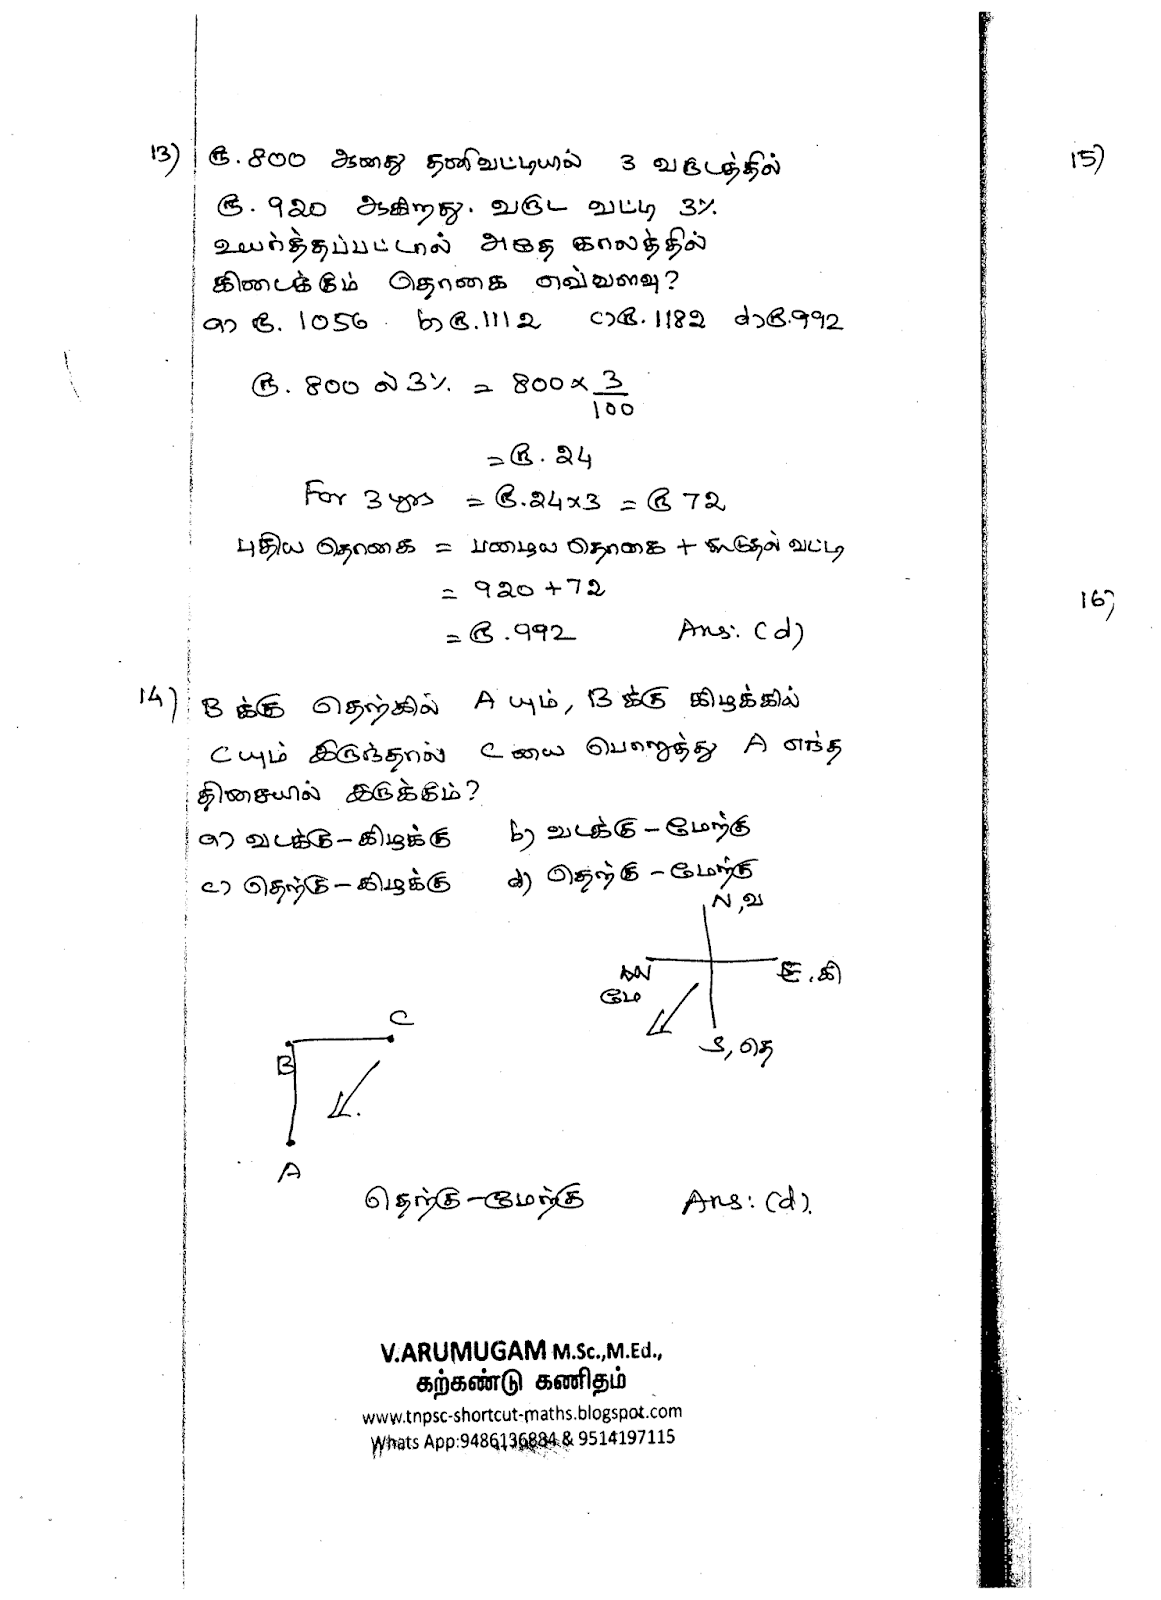 TNPSC – 2019 - Sociologist & Economist in the office of the Additional Director General of Police, Social Justice and Human Rights, Chennai in the Tamil Nadu General Service EXAM - EXAM DATE: 24.08.2019. PAGE - 08/13